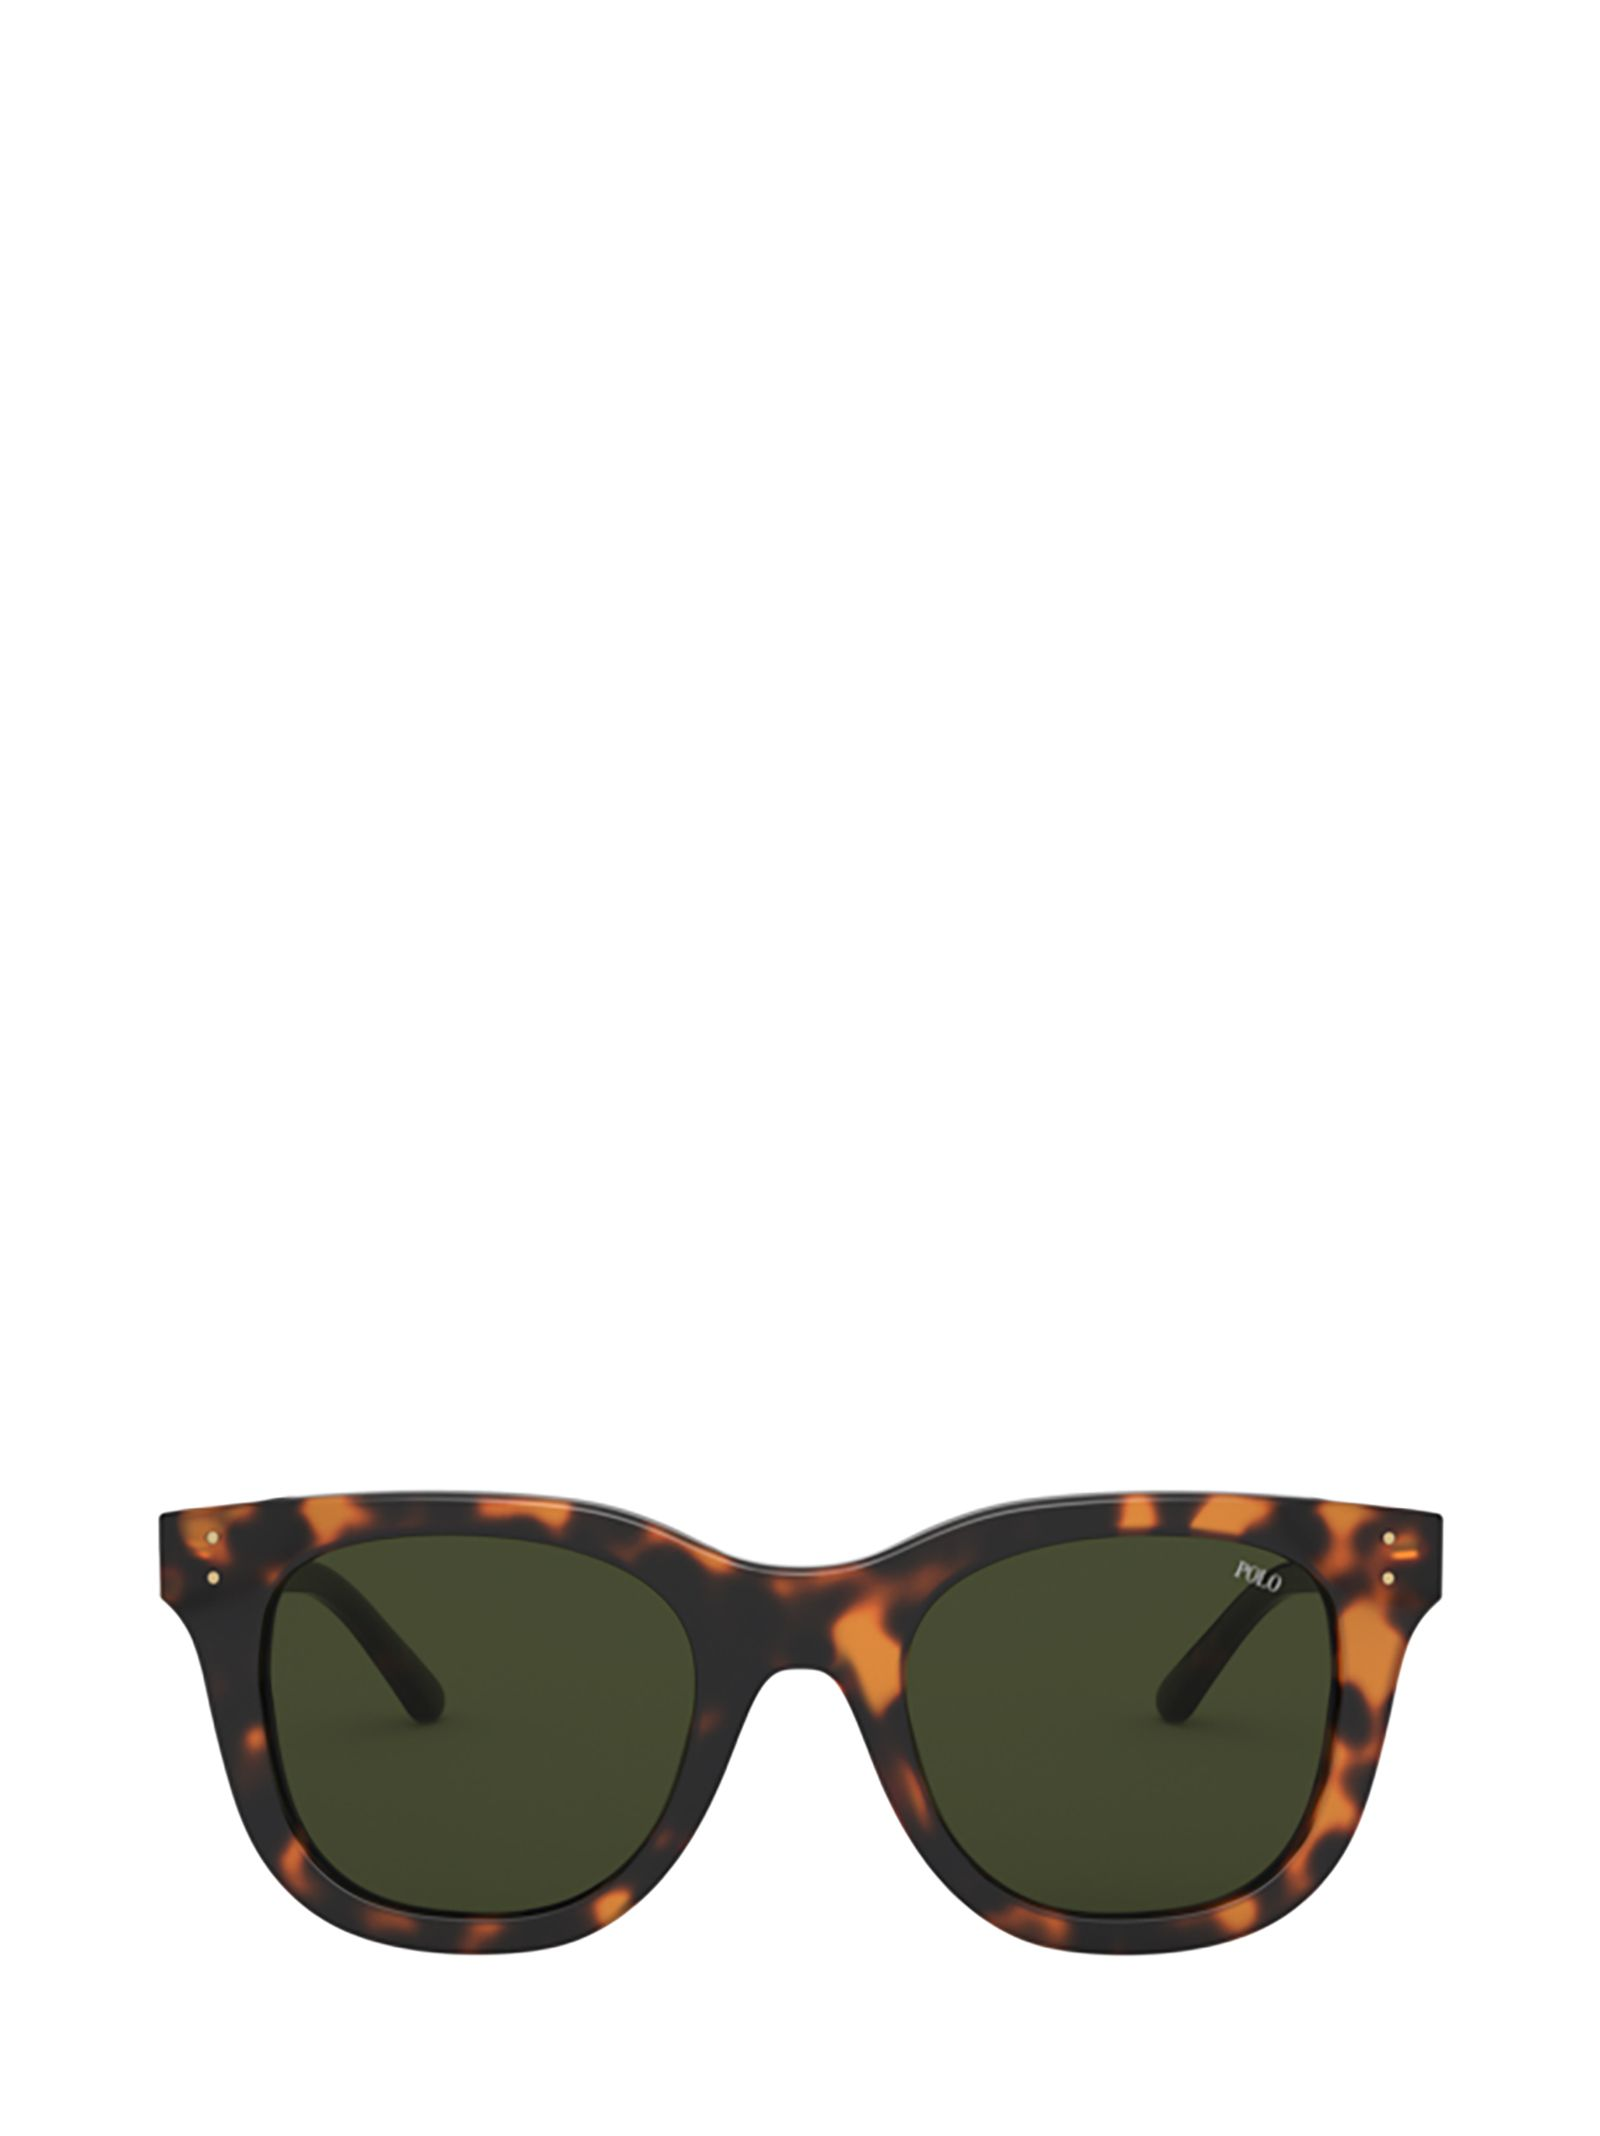 Ralph Lauren RALPH LAUREN WOMEN'S MULTICOLOR METAL SUNGLASSES